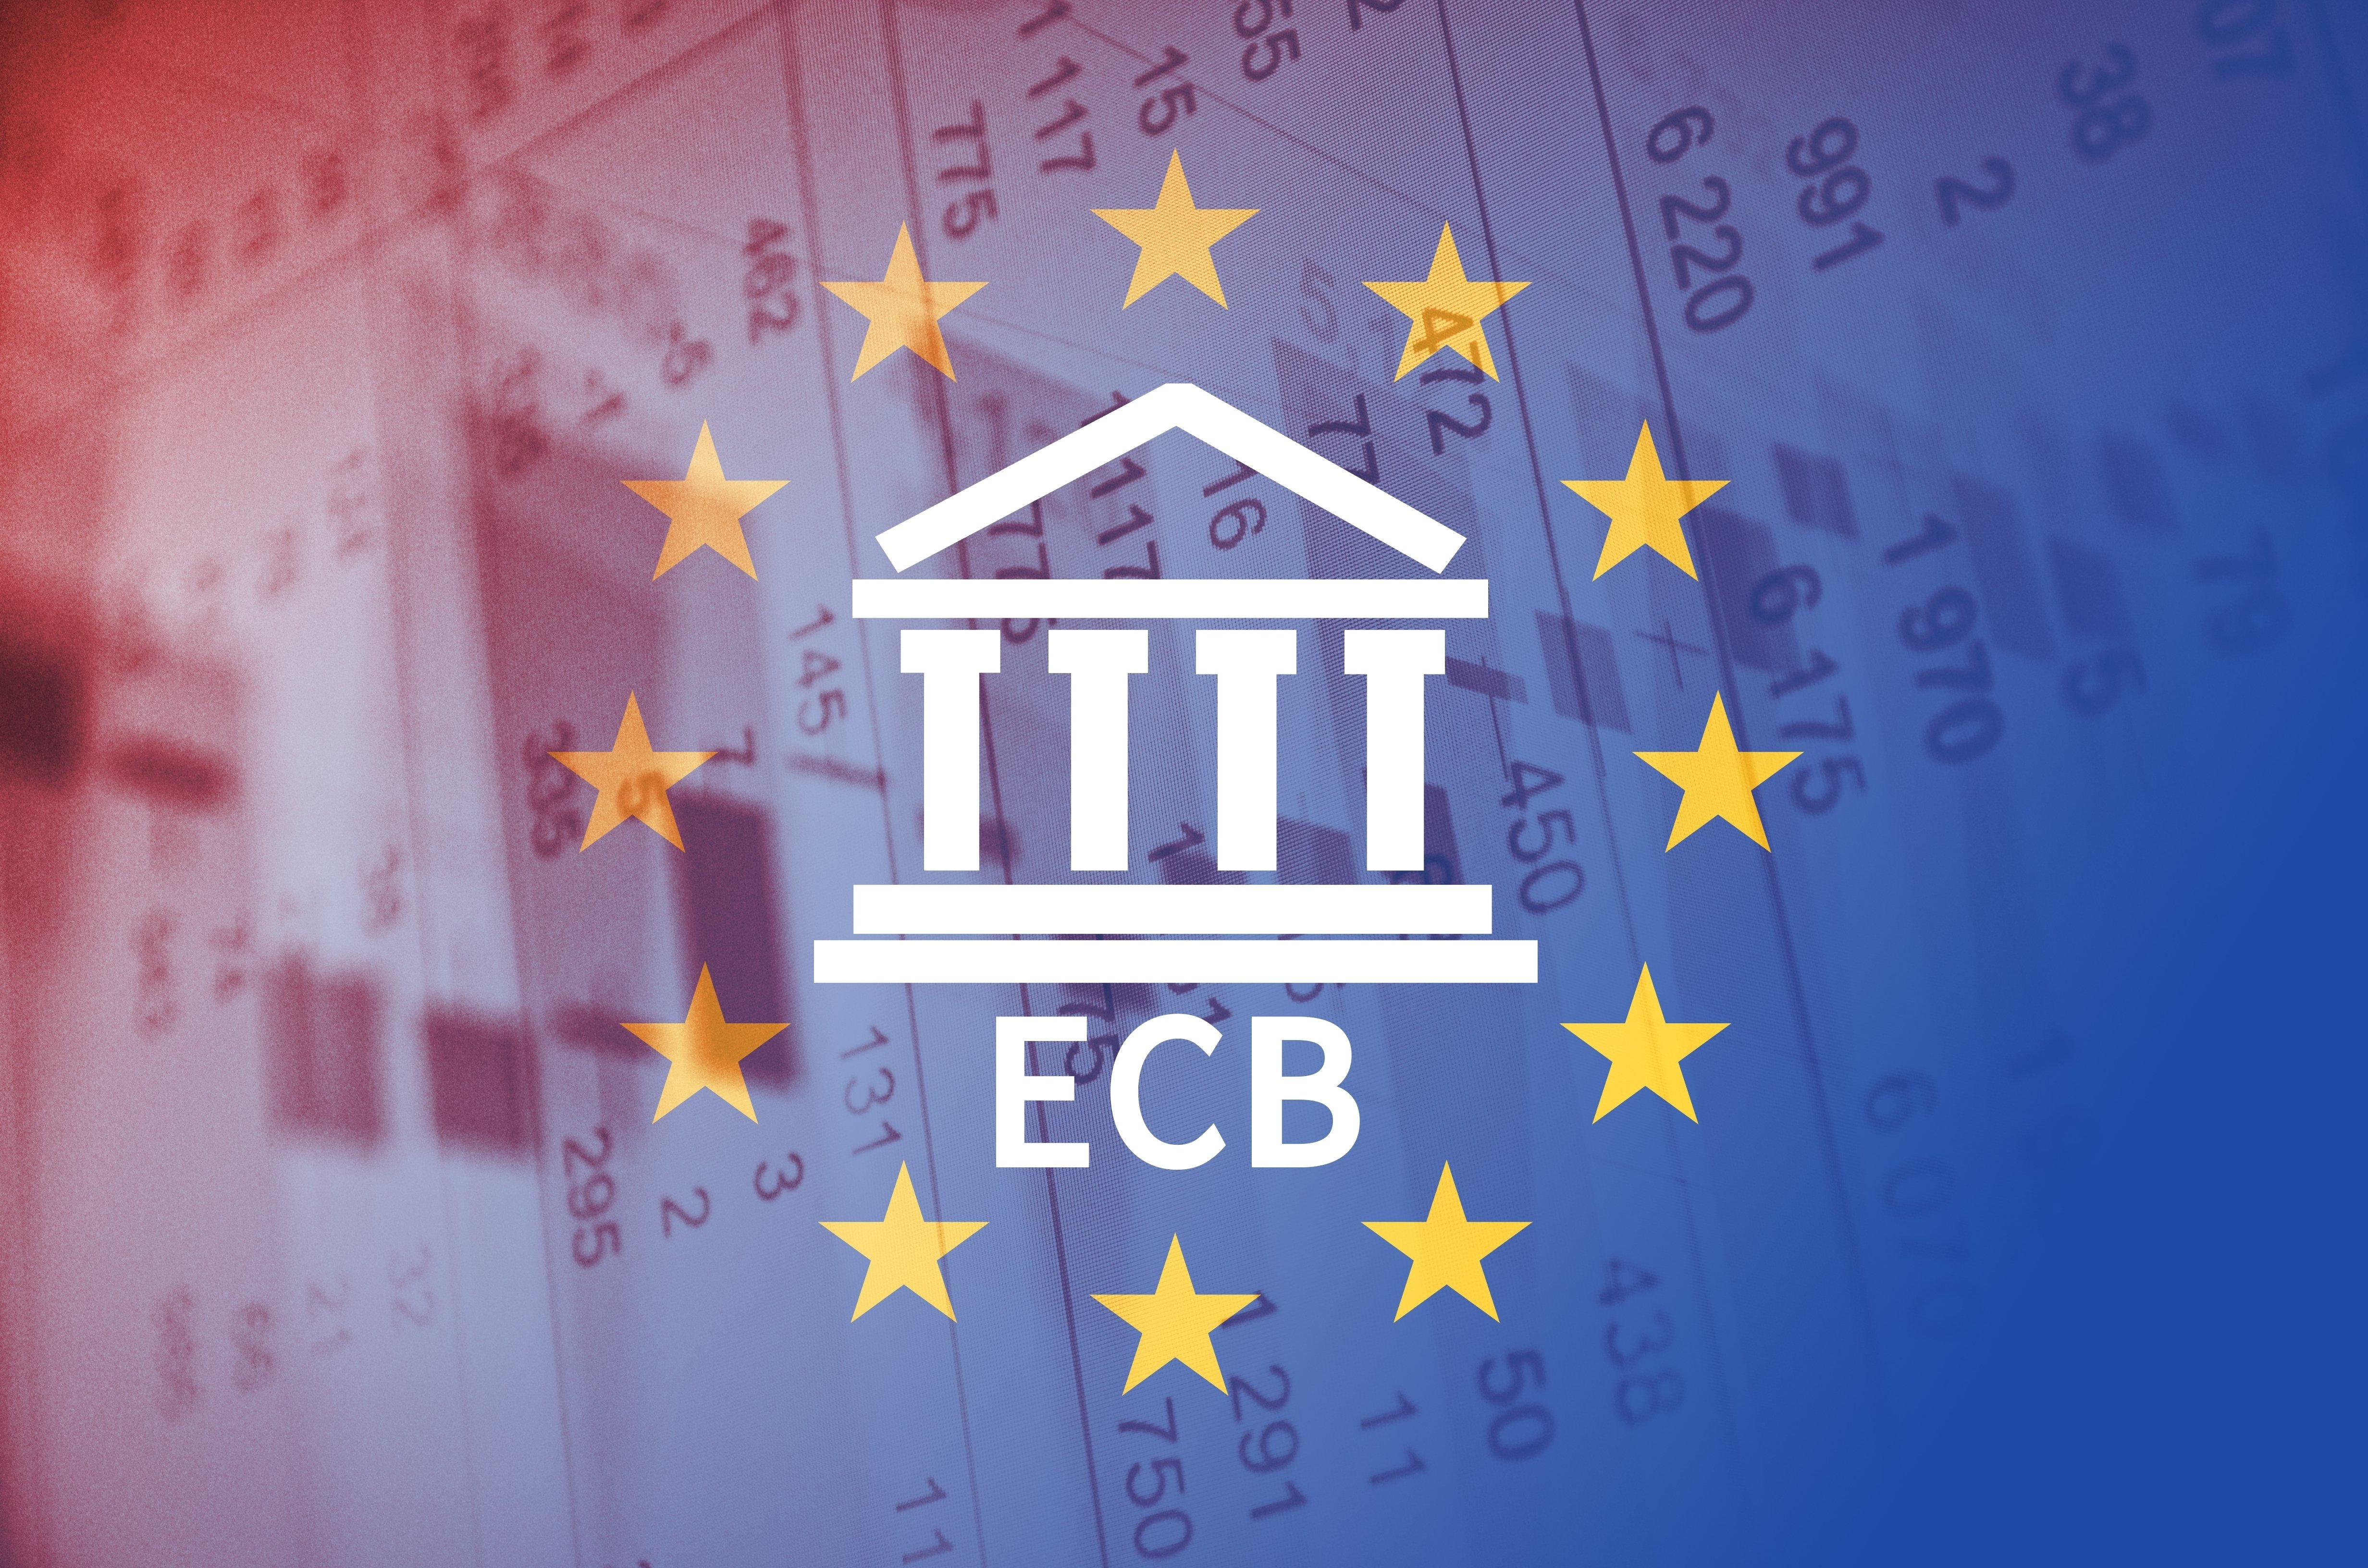 ECB and flag of The European Union over financial background